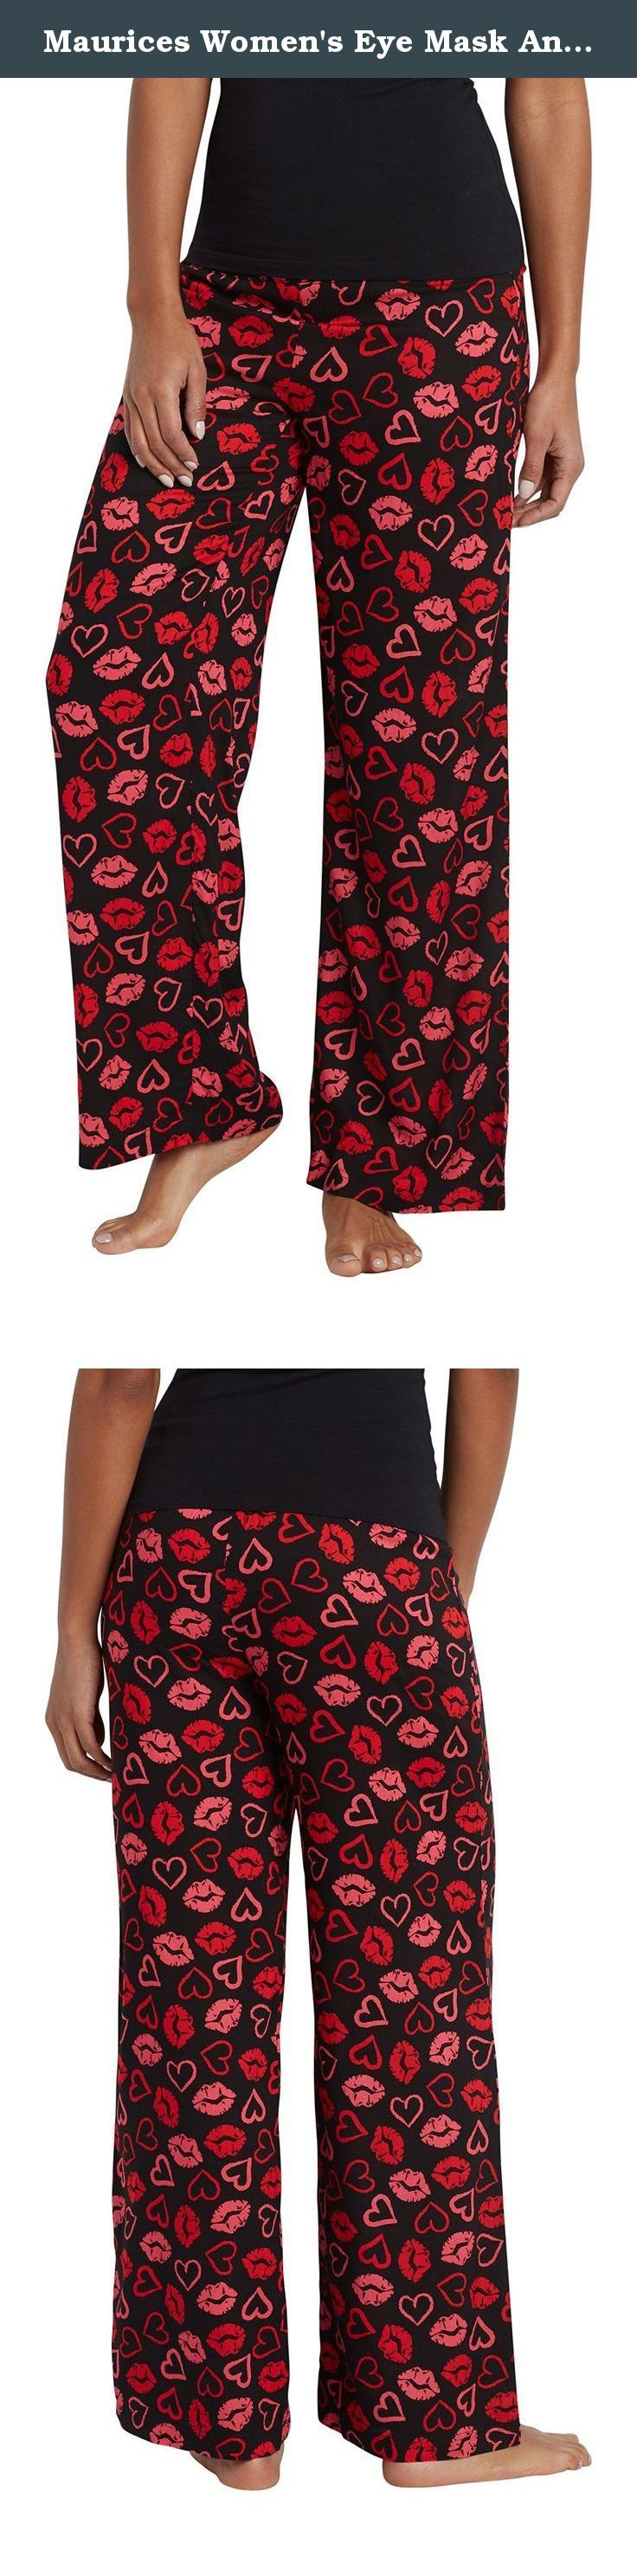 Maurices Women's Eye Mask And Lightweight Sleep Pant Set In Lip Print Large Black Combo. Eye mask and lightweight sleep pant set in lip print. Fabric and care: imported 100% rayon machine wash.